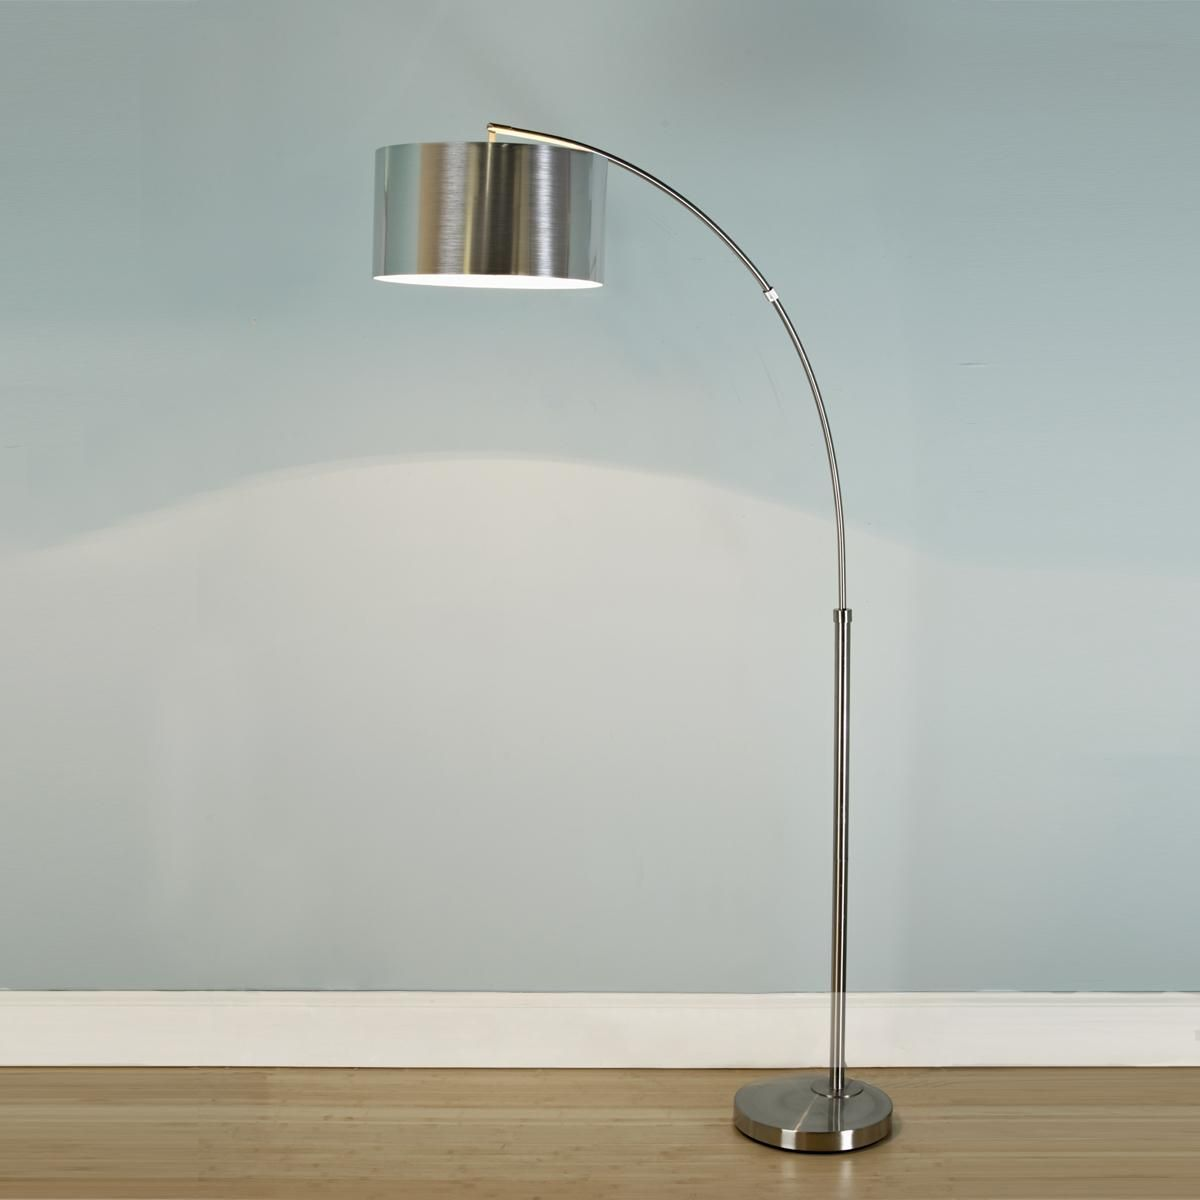 Nickel arc floor lamp with silver drum shade slick silver foil nickel arc floor lamp with silver drum shade shades of light modern lamp shades australia mozeypictures Gallery